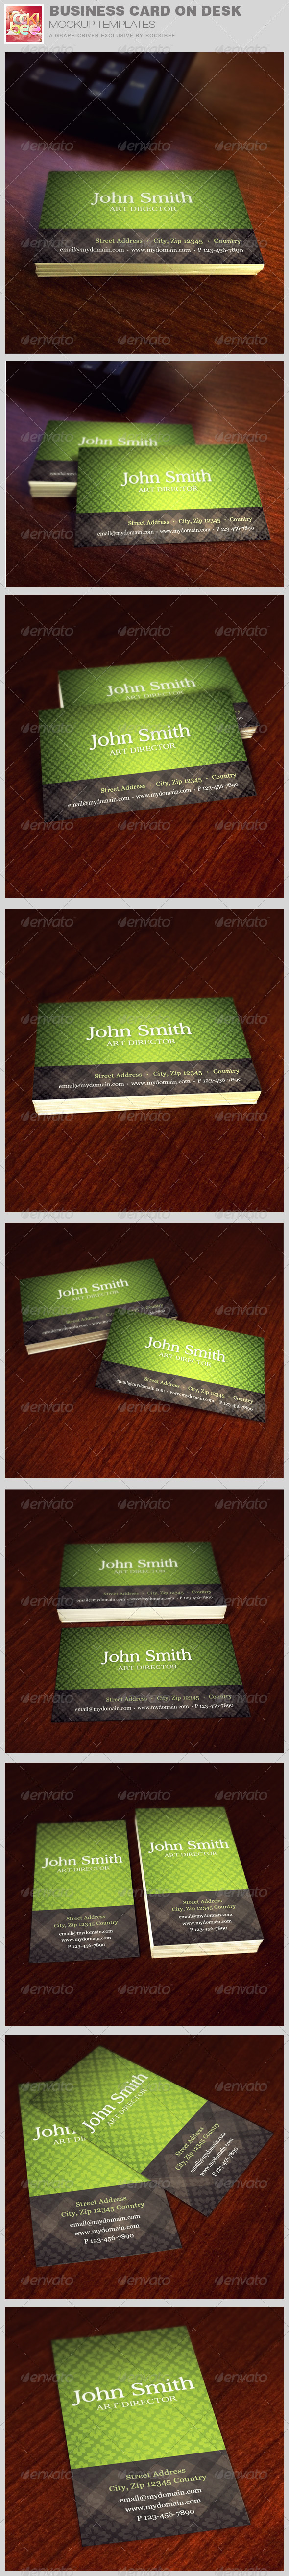 GraphicRiver Business Card on Desk Mockup Templates 8320097